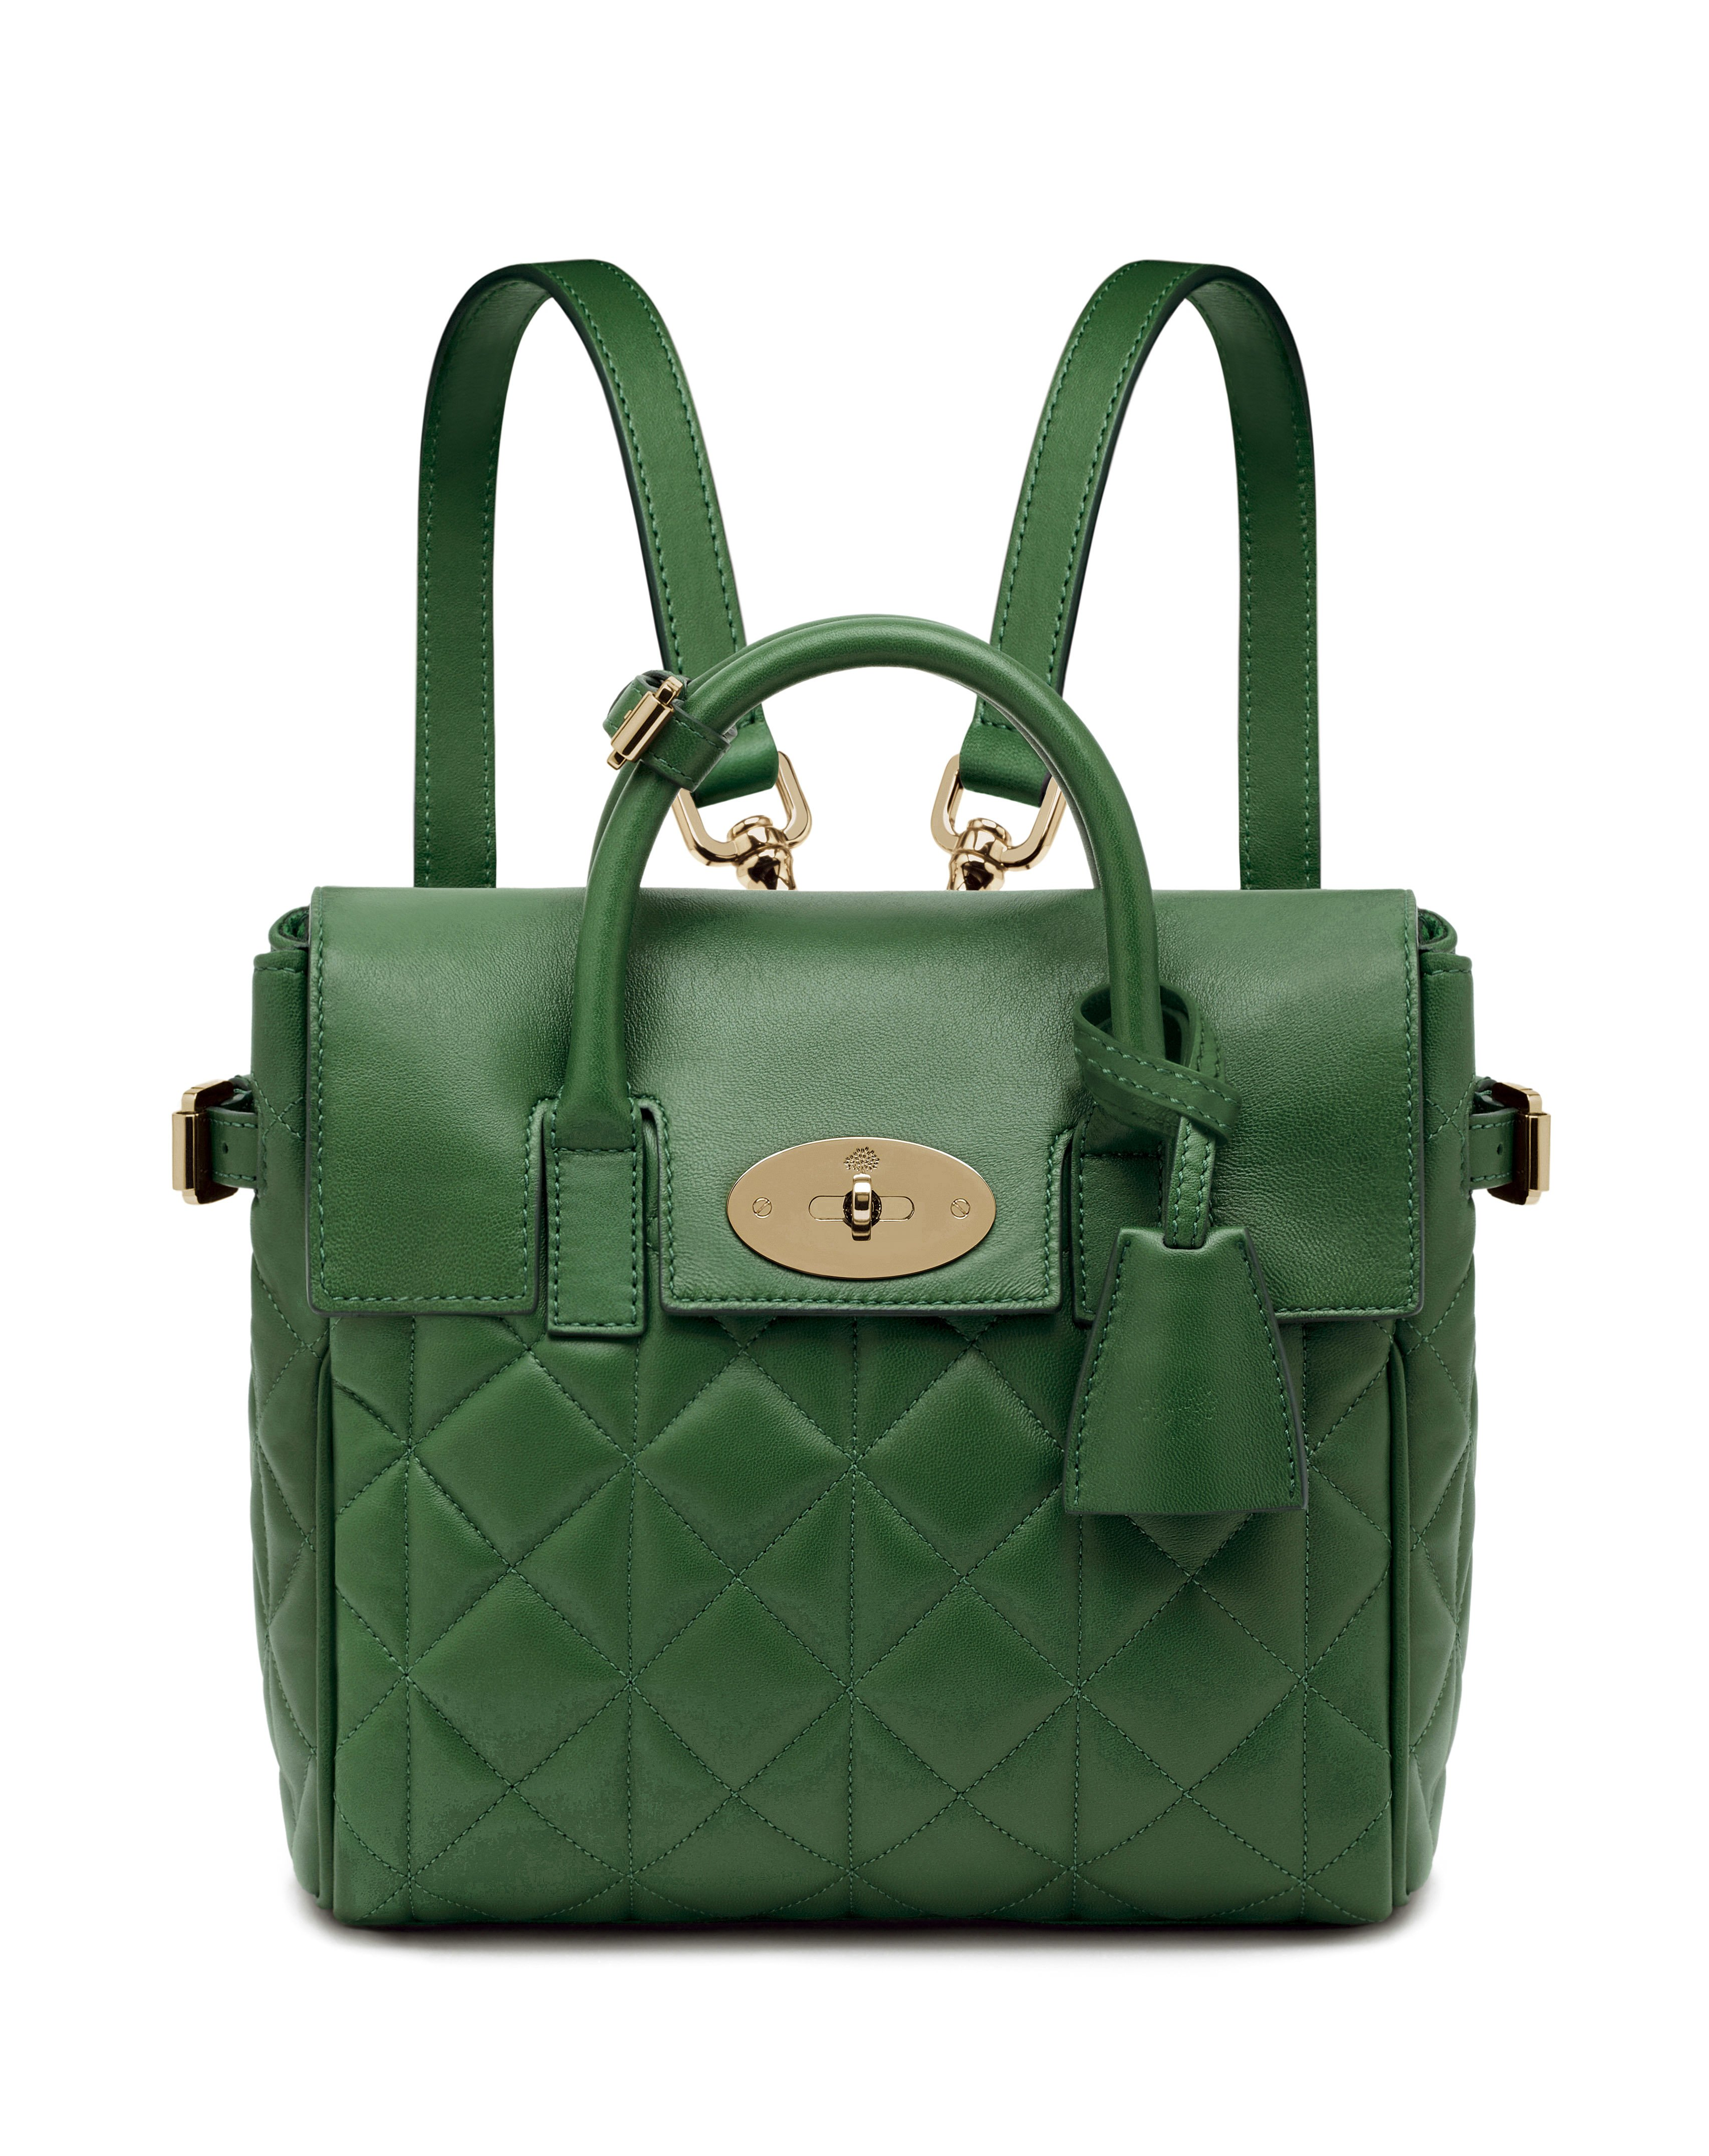 Mini Cara Delevingne Bag in Delevingne Green Quilted Nappa